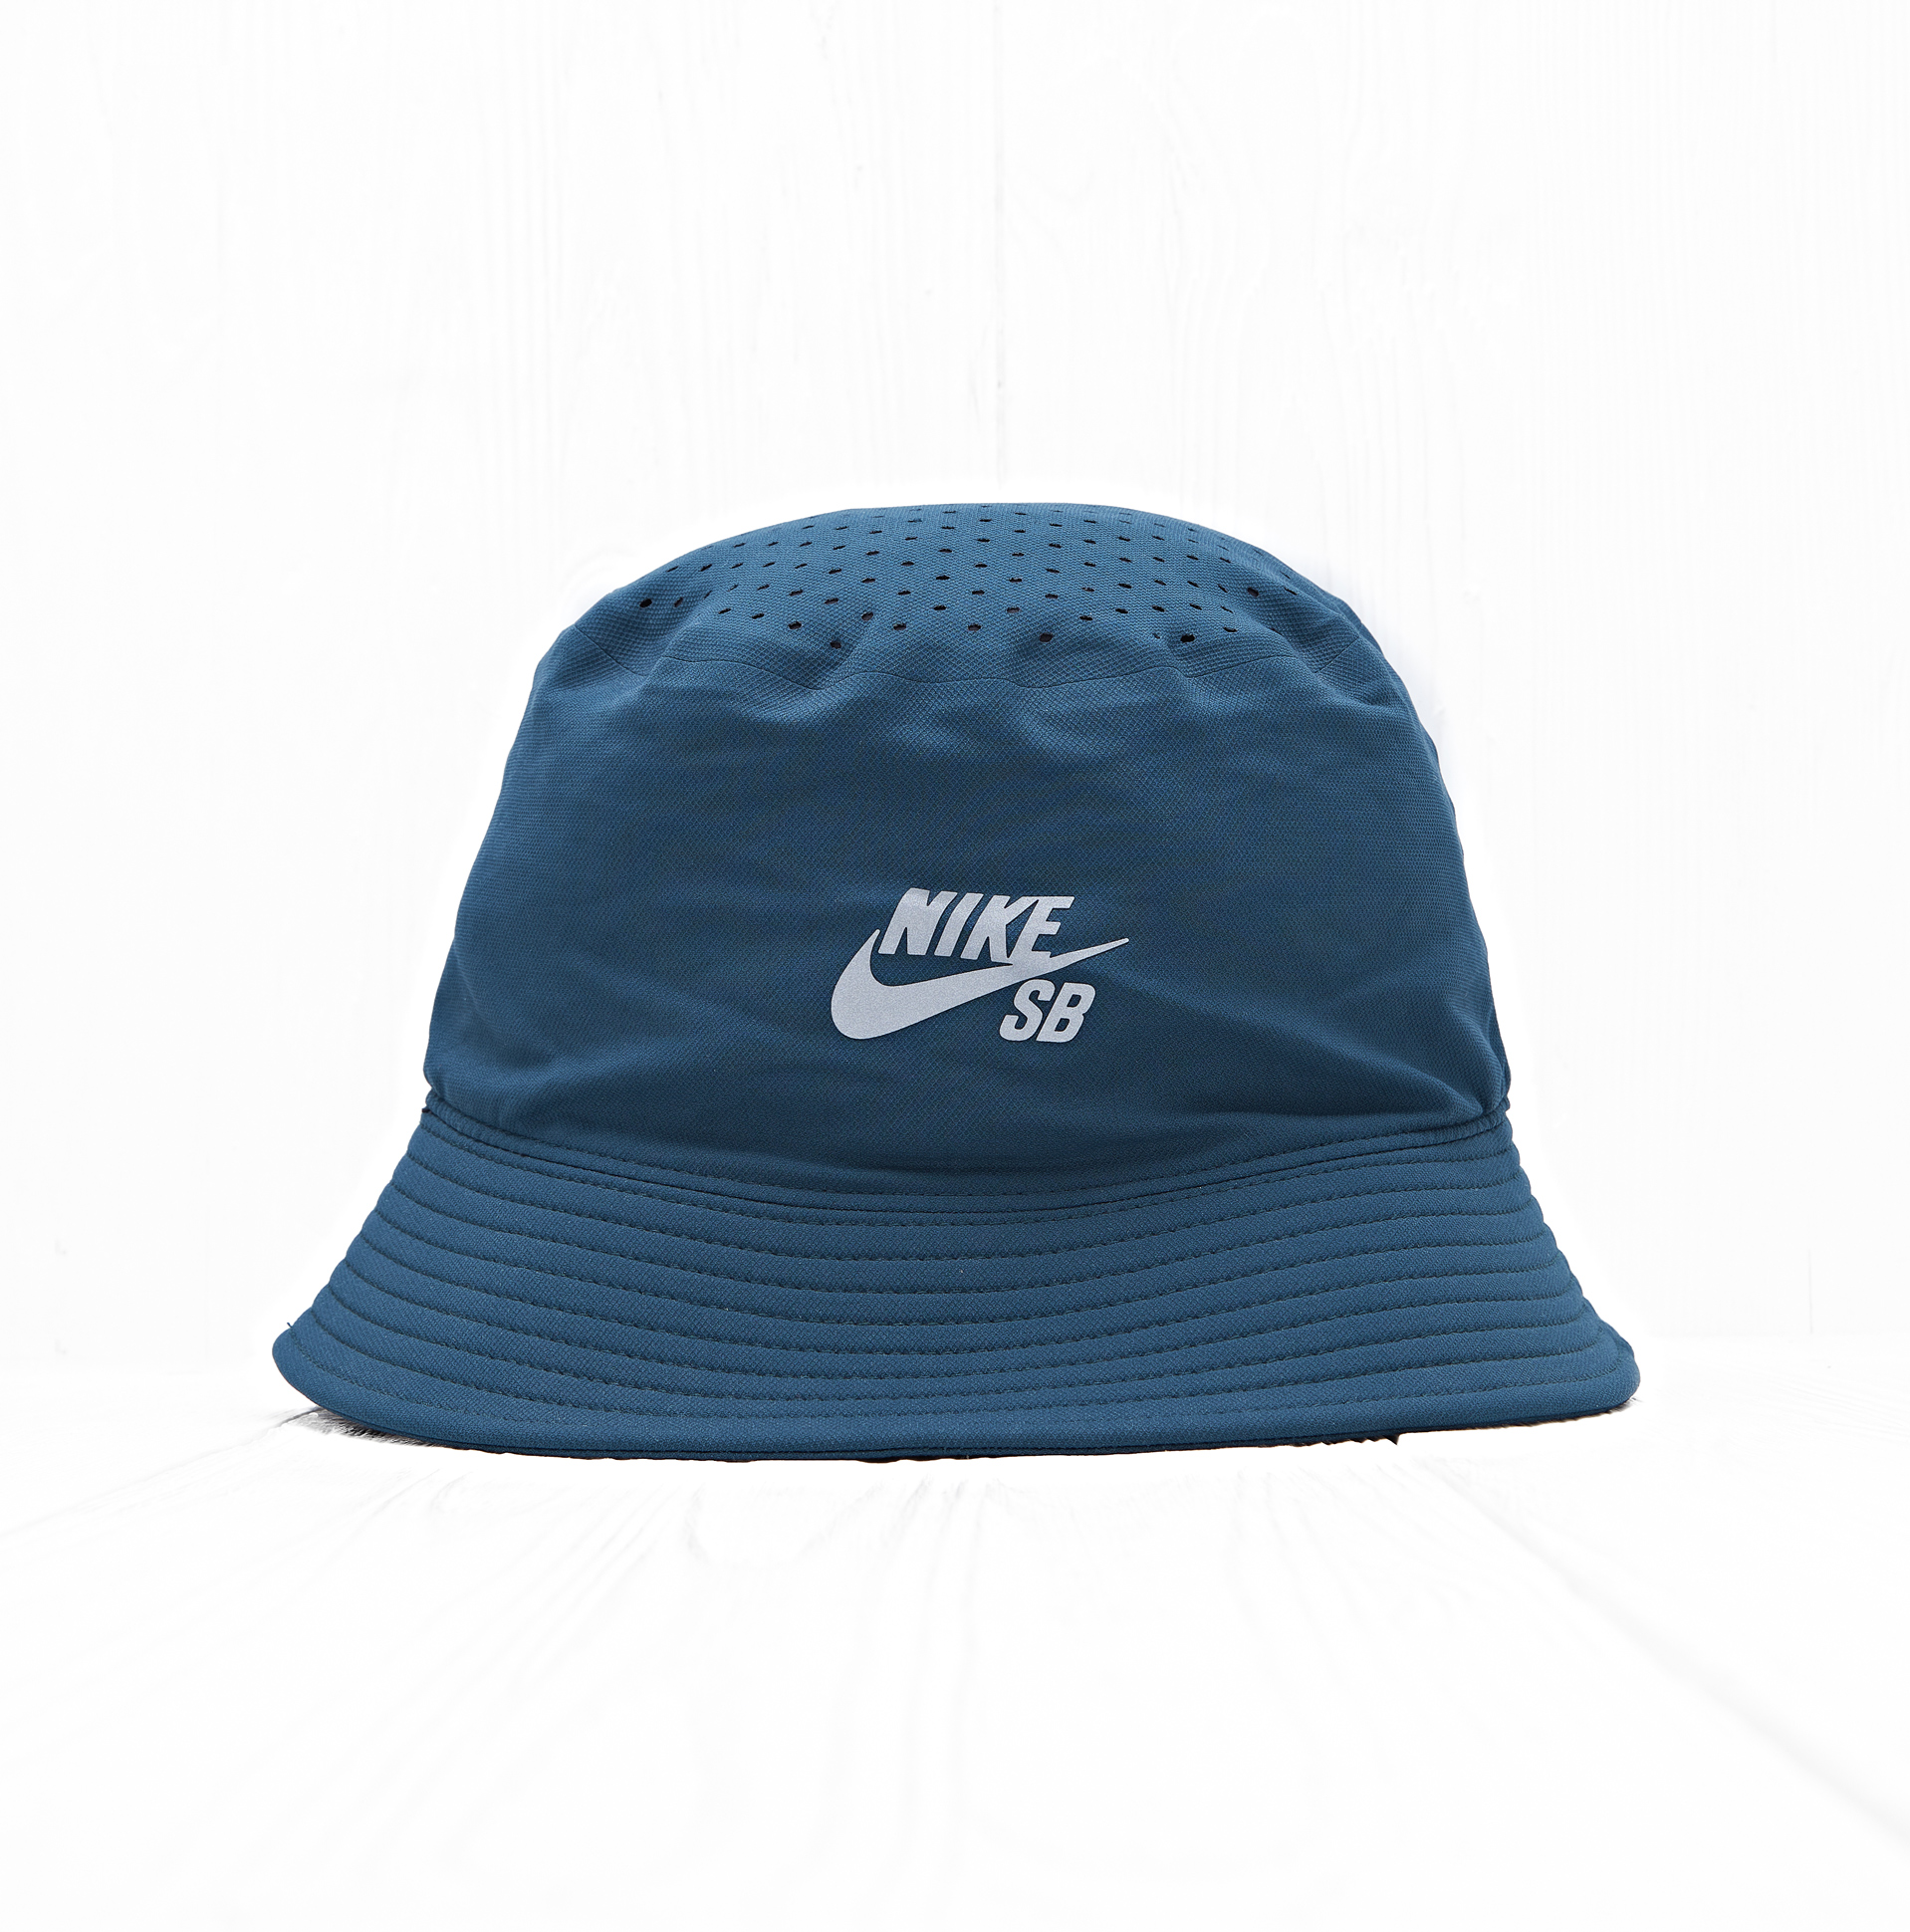 Панама Nike SB PERFORMANCE BUCKET Midnight Teal/Black